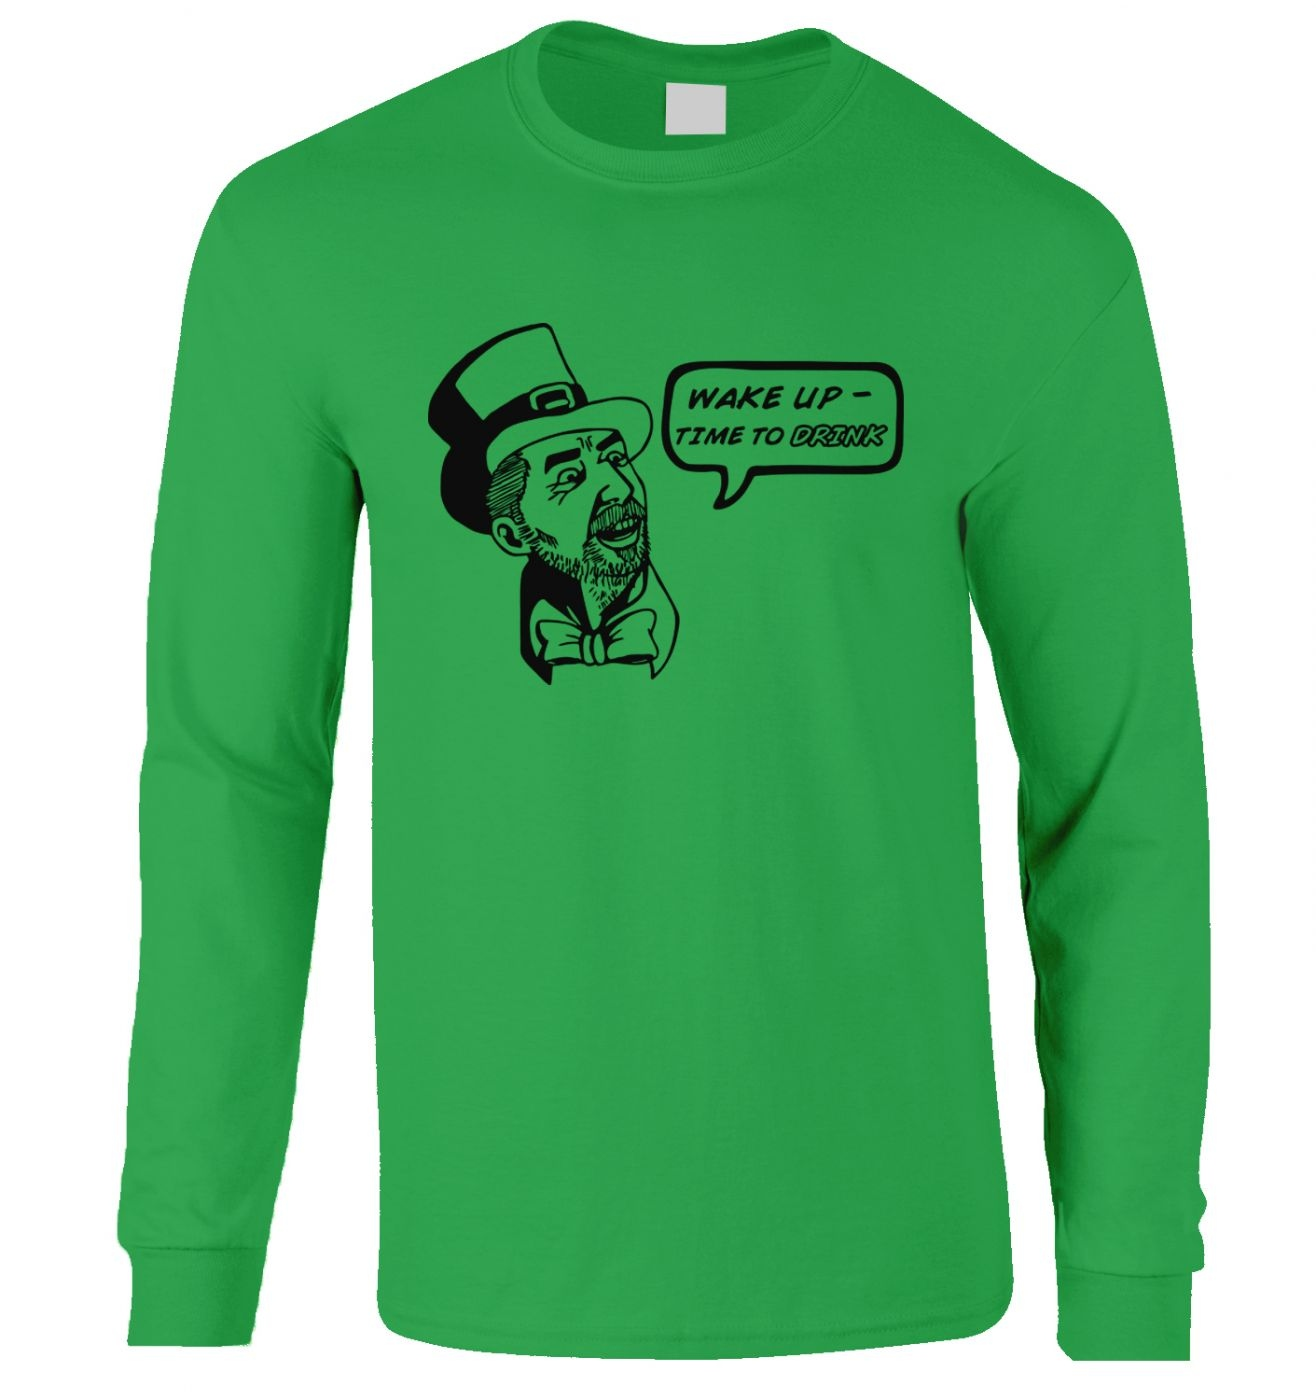 Wake Up Time To Drink long-sleeved t-shirt